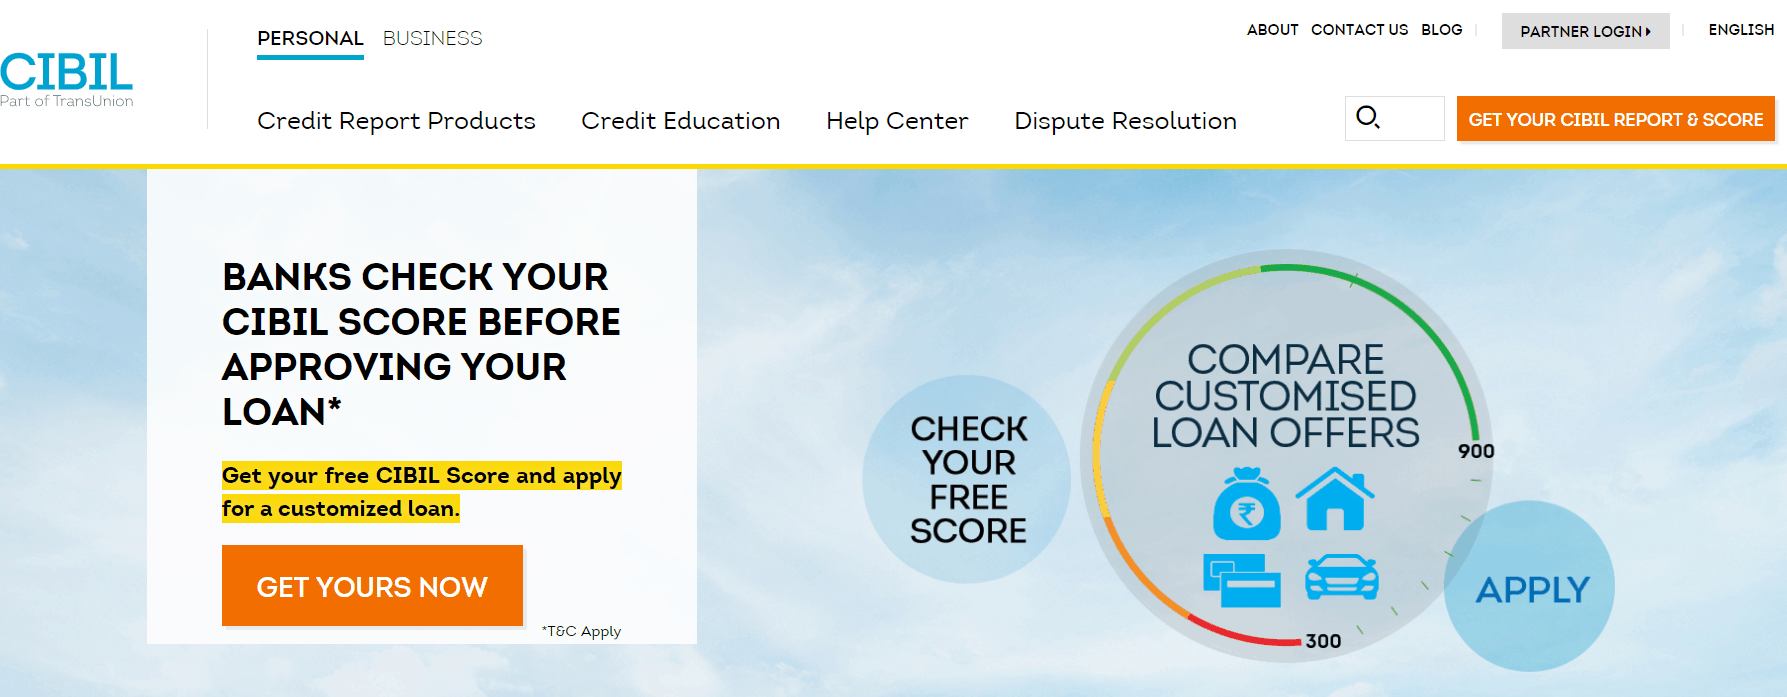 Check CIBIL Score Online Free 2020 - A Step by Step Guide